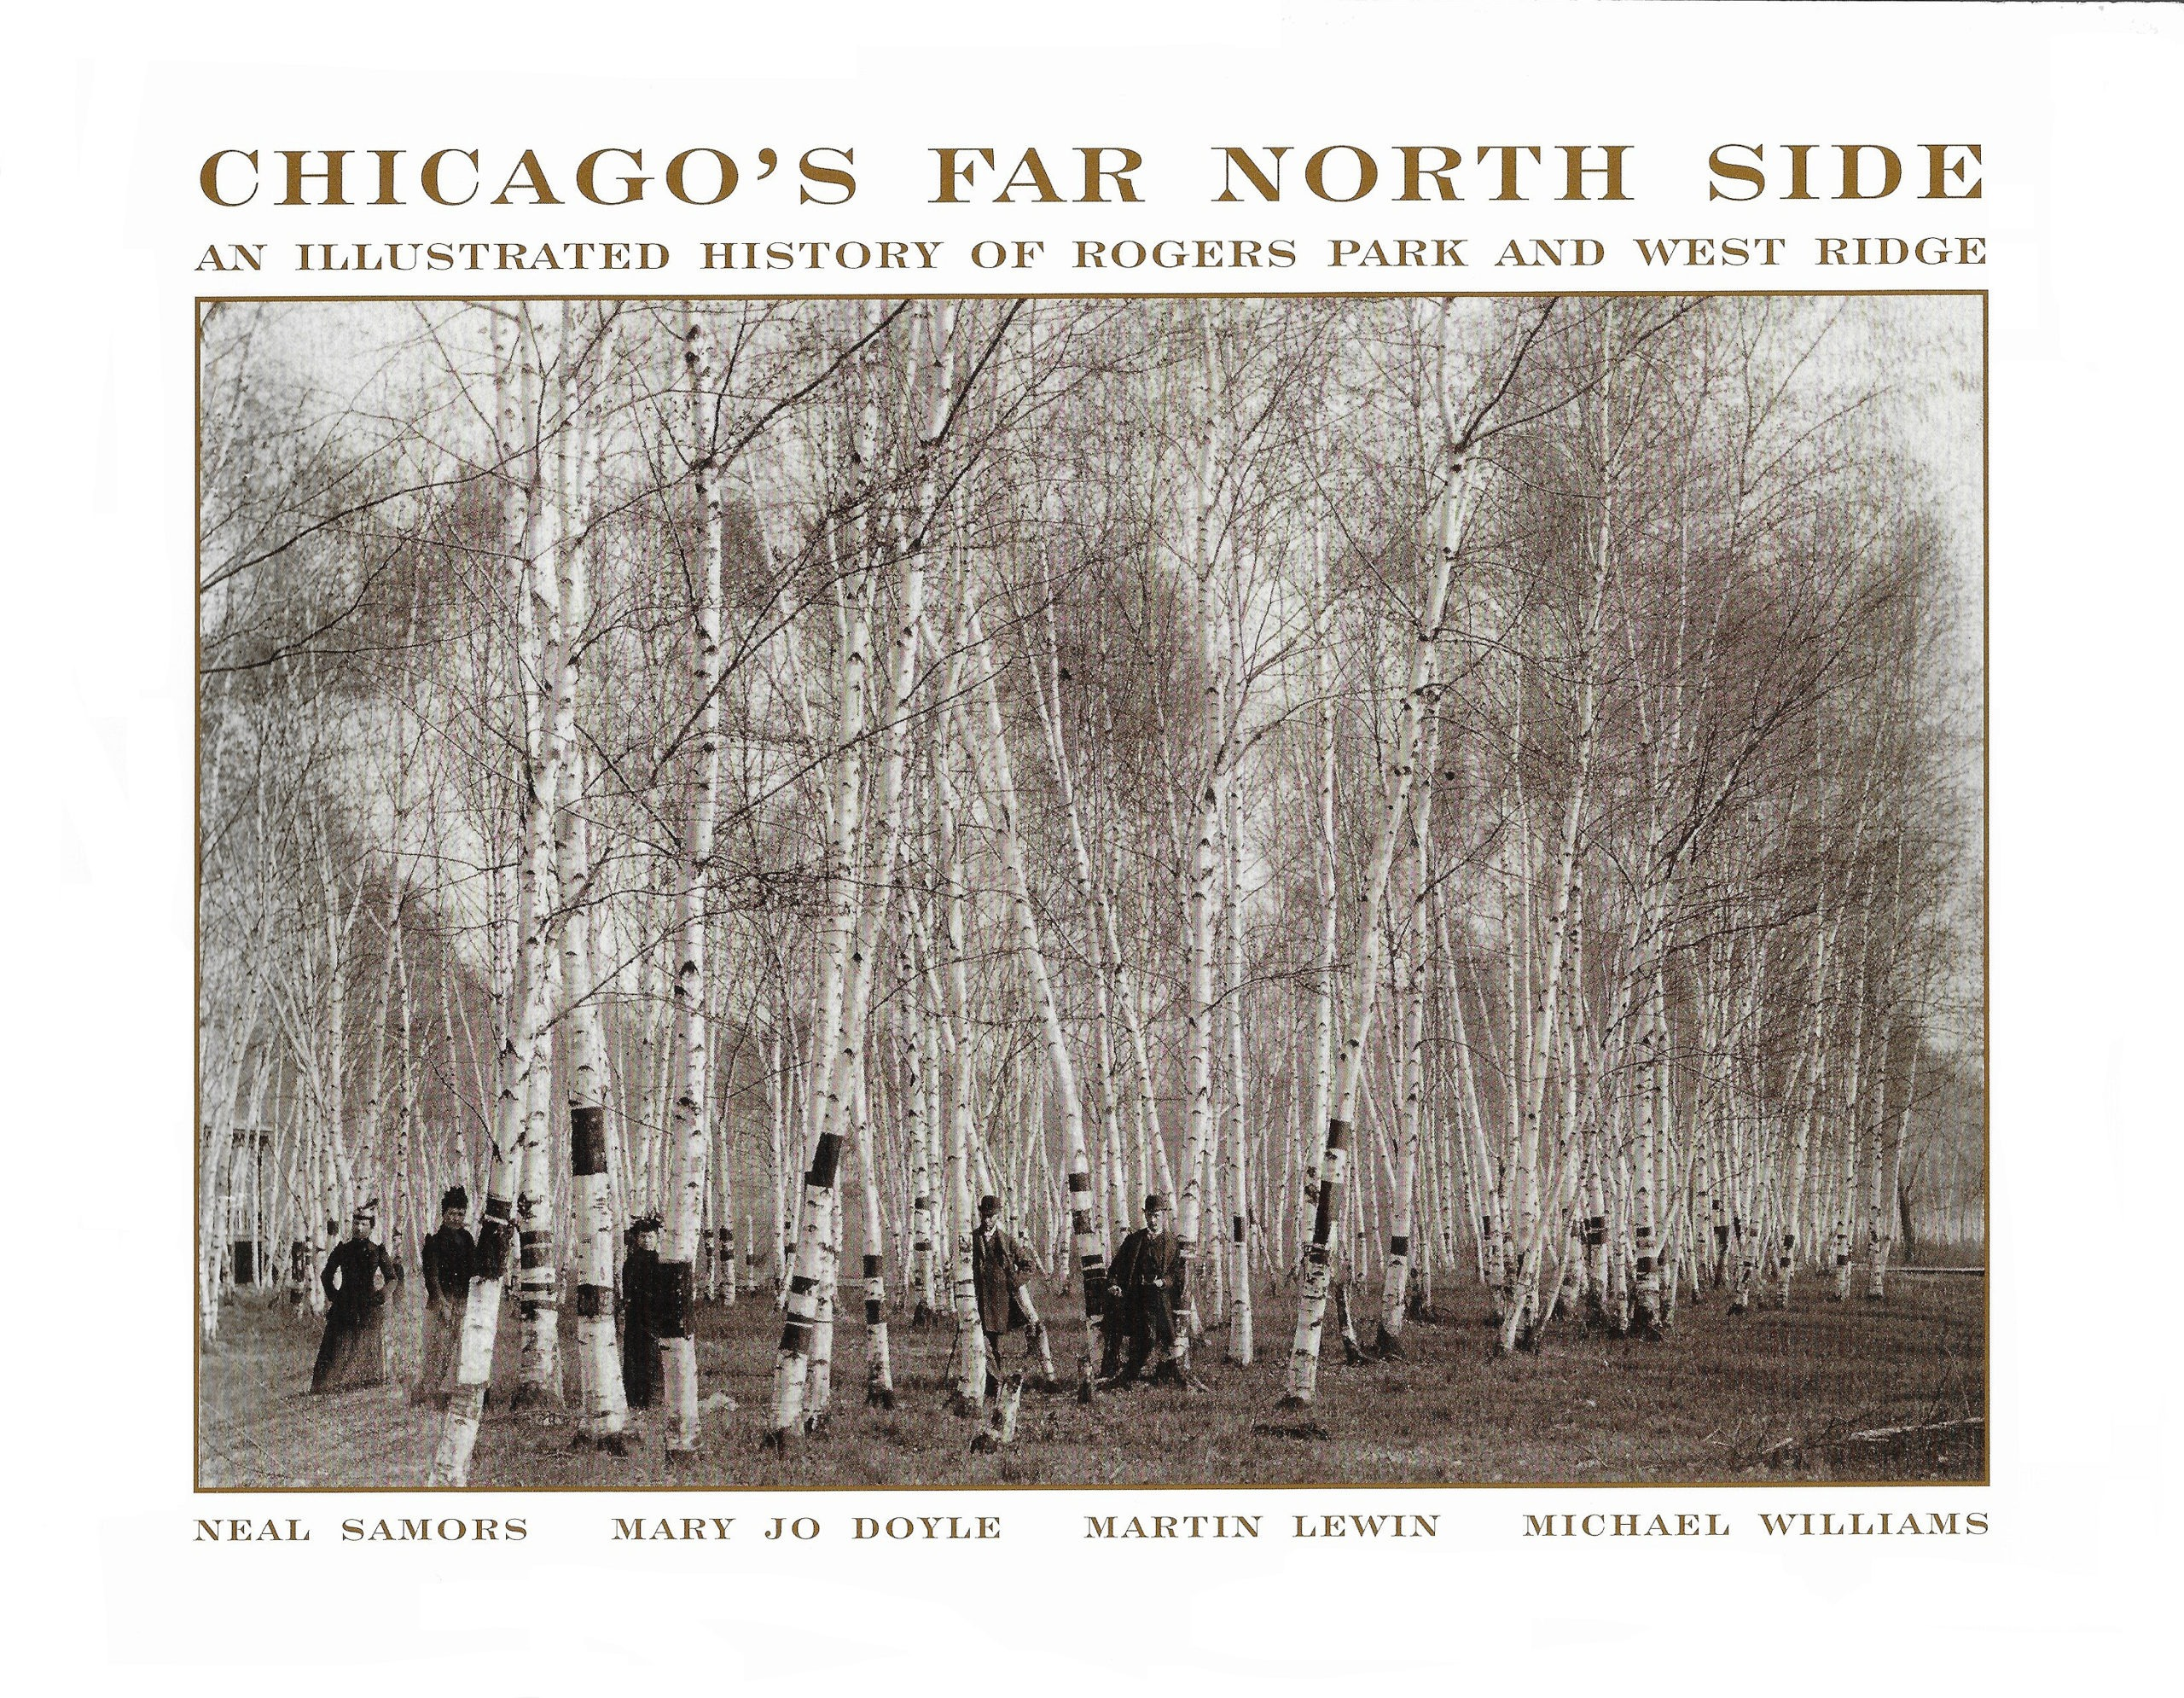 Far North Side Front Cover